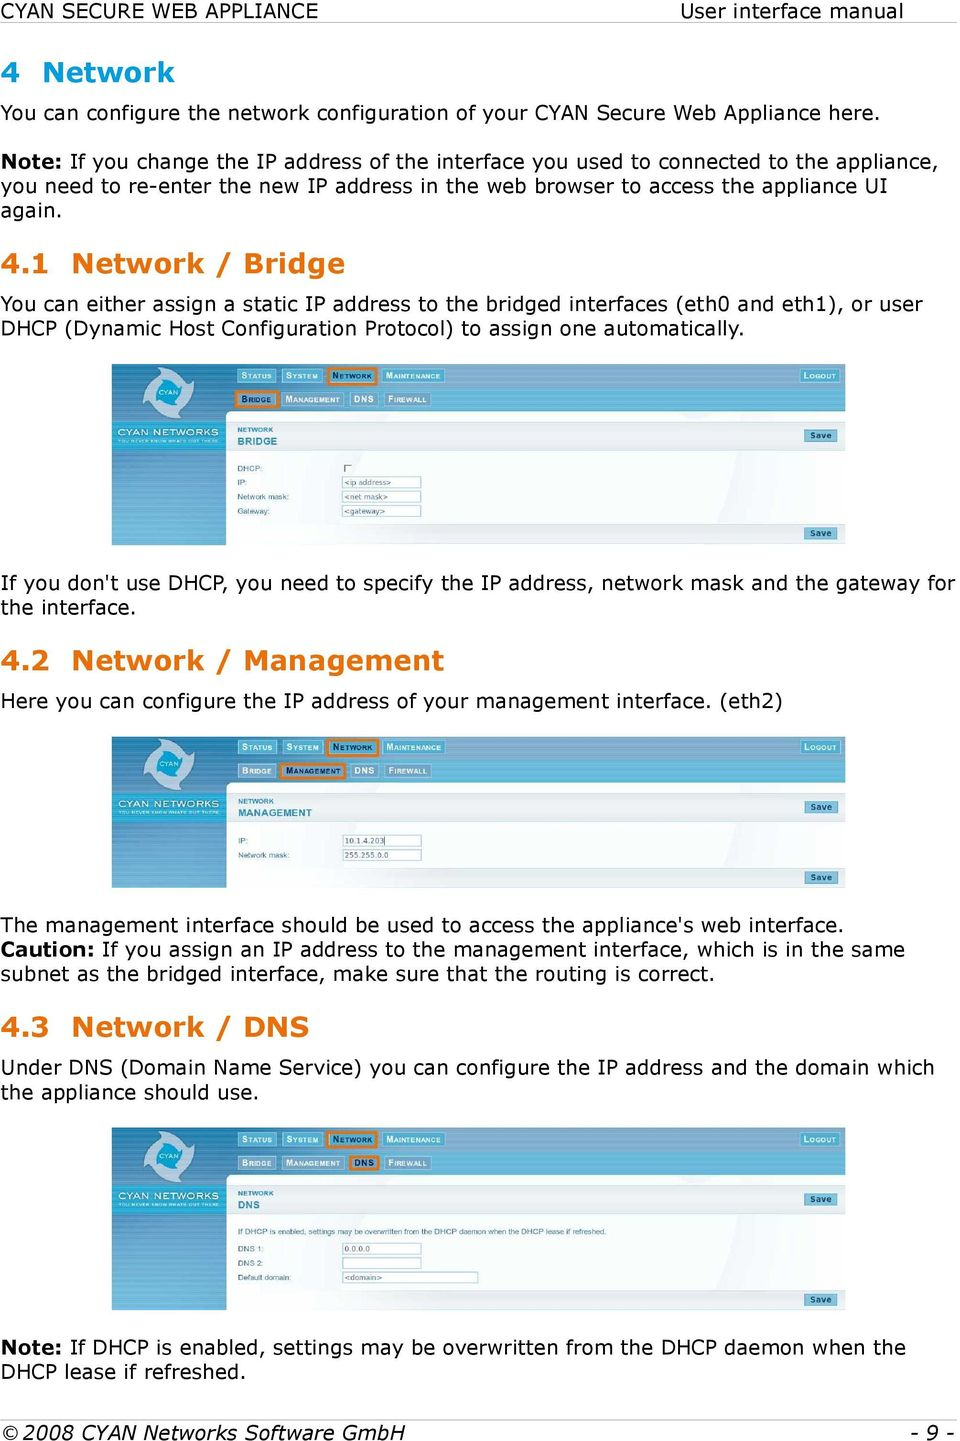 1 Network / Bridge You can either assign a static IP address to the bridged interfaces (eth0 and eth1), or user DHCP (Dynamic Host Configuration Protocol) to assign one automatically.